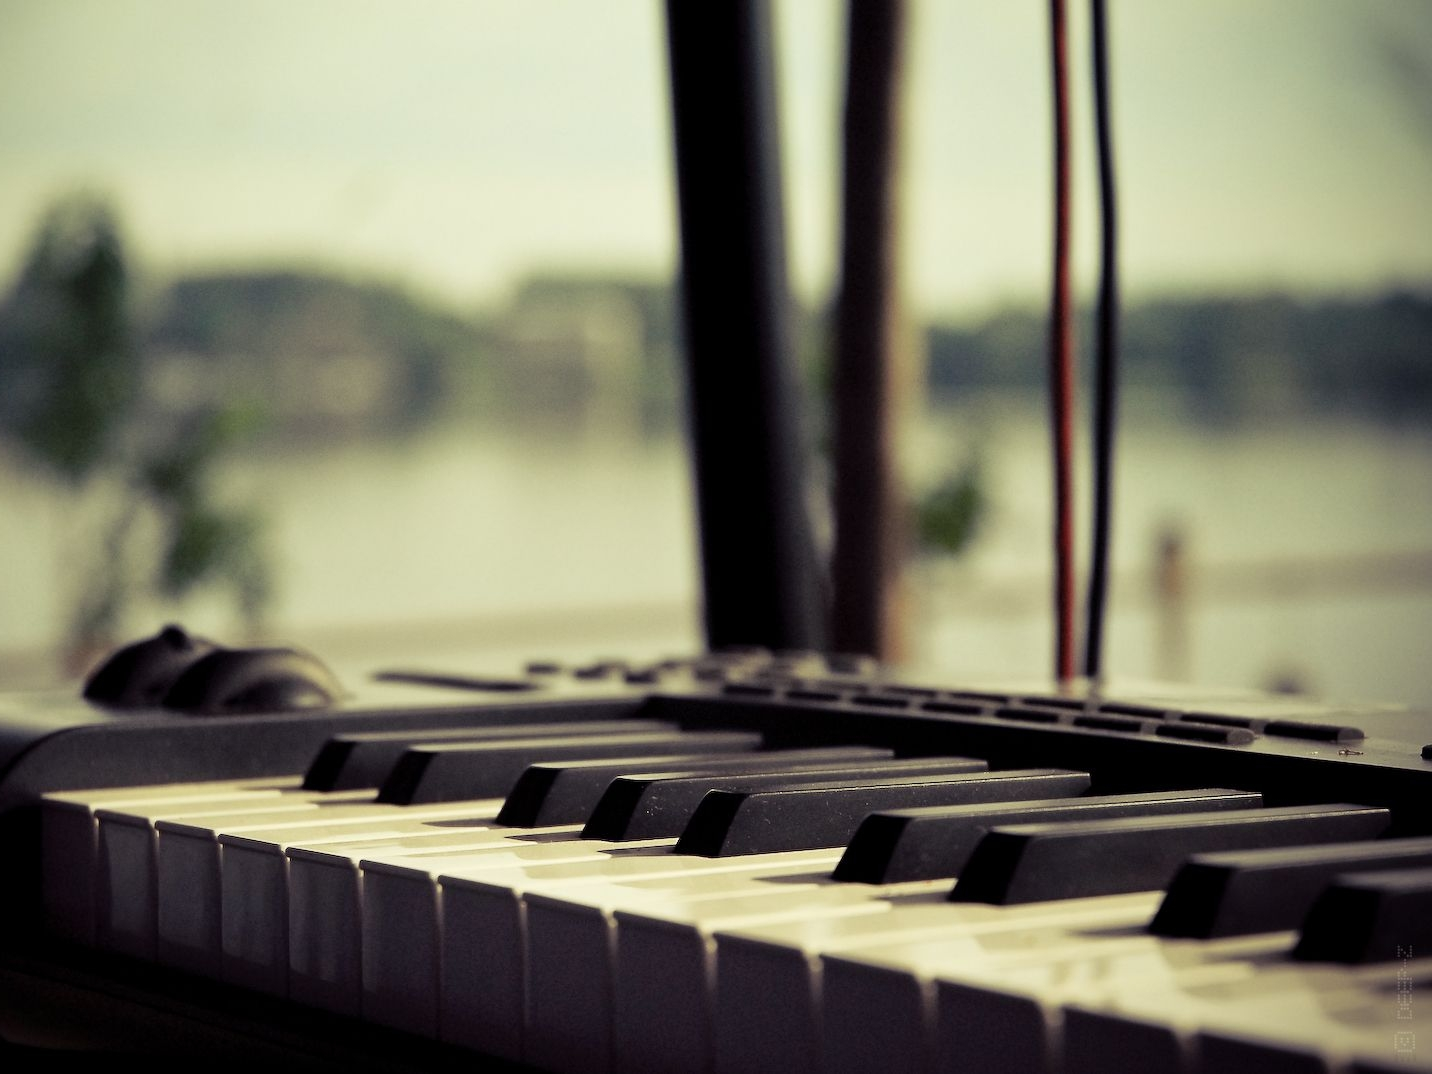 Instrumental Production - We'll create the perfect instrumental bed track for your song.